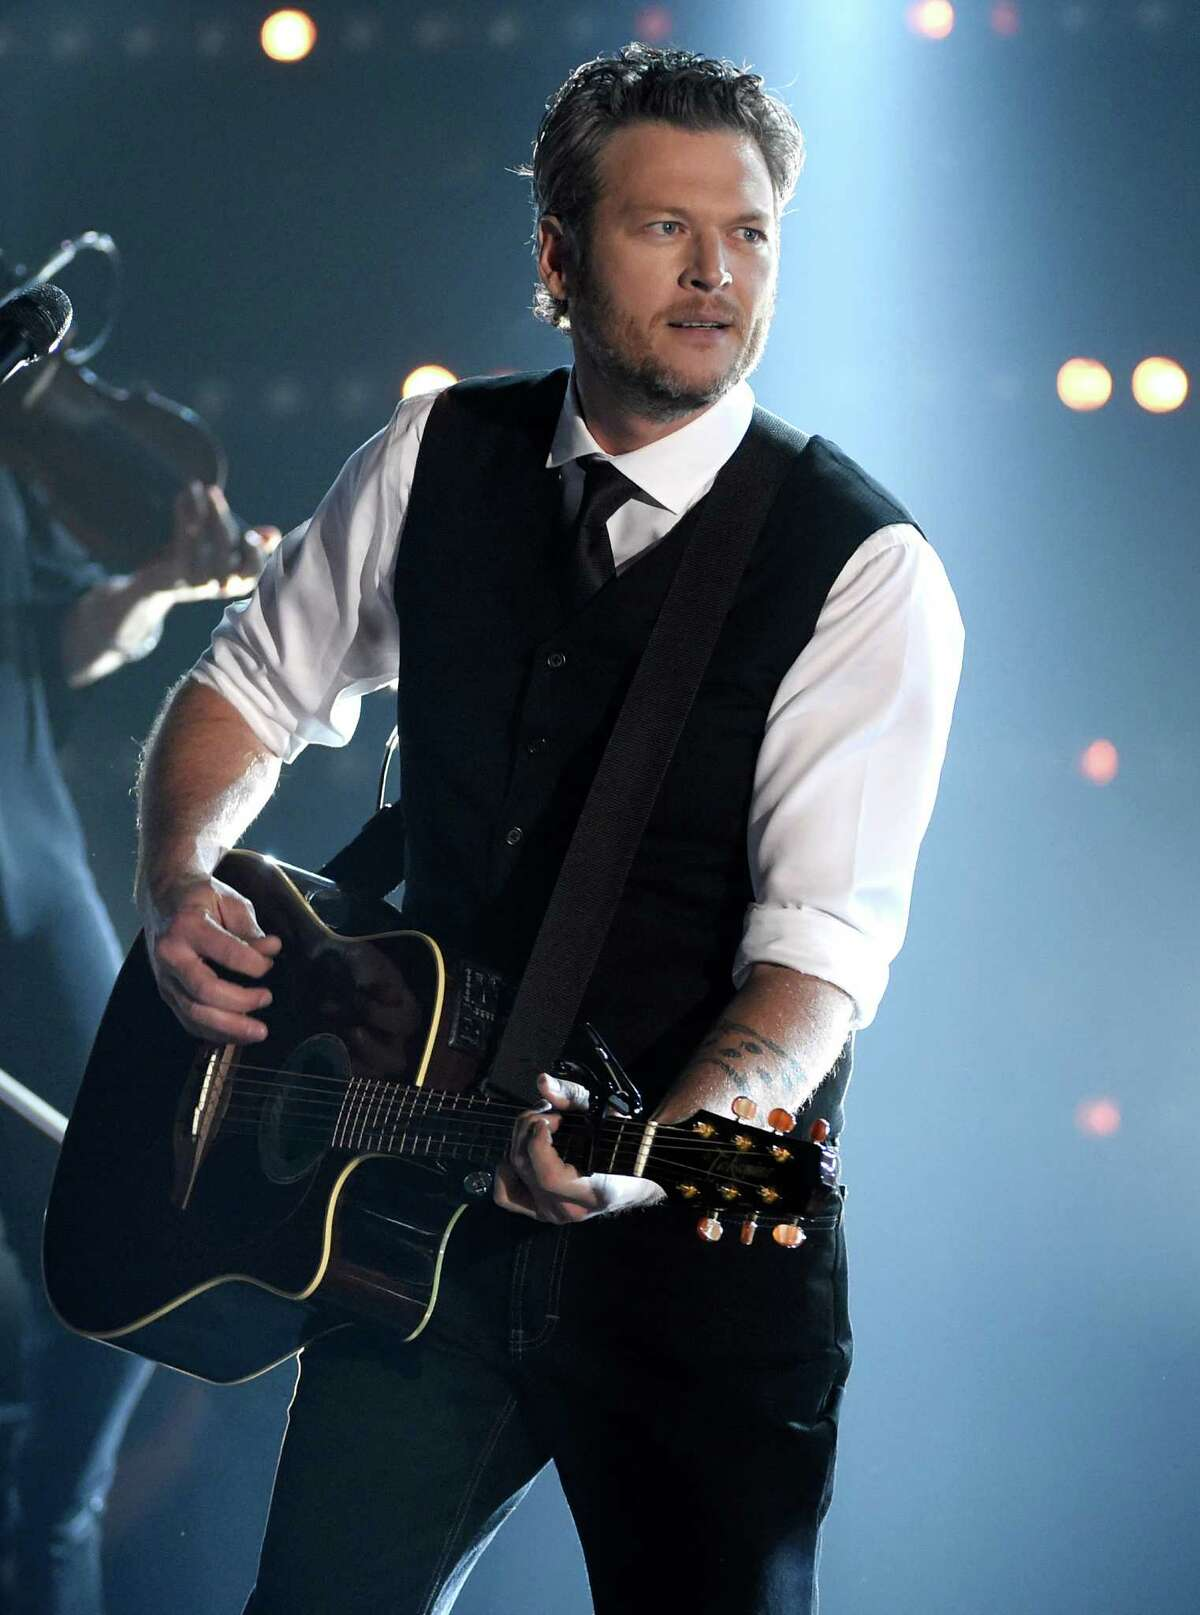 Blake Shelton is making a stop at Times Union Center in March. Keep clicking for more concerts coming soon.